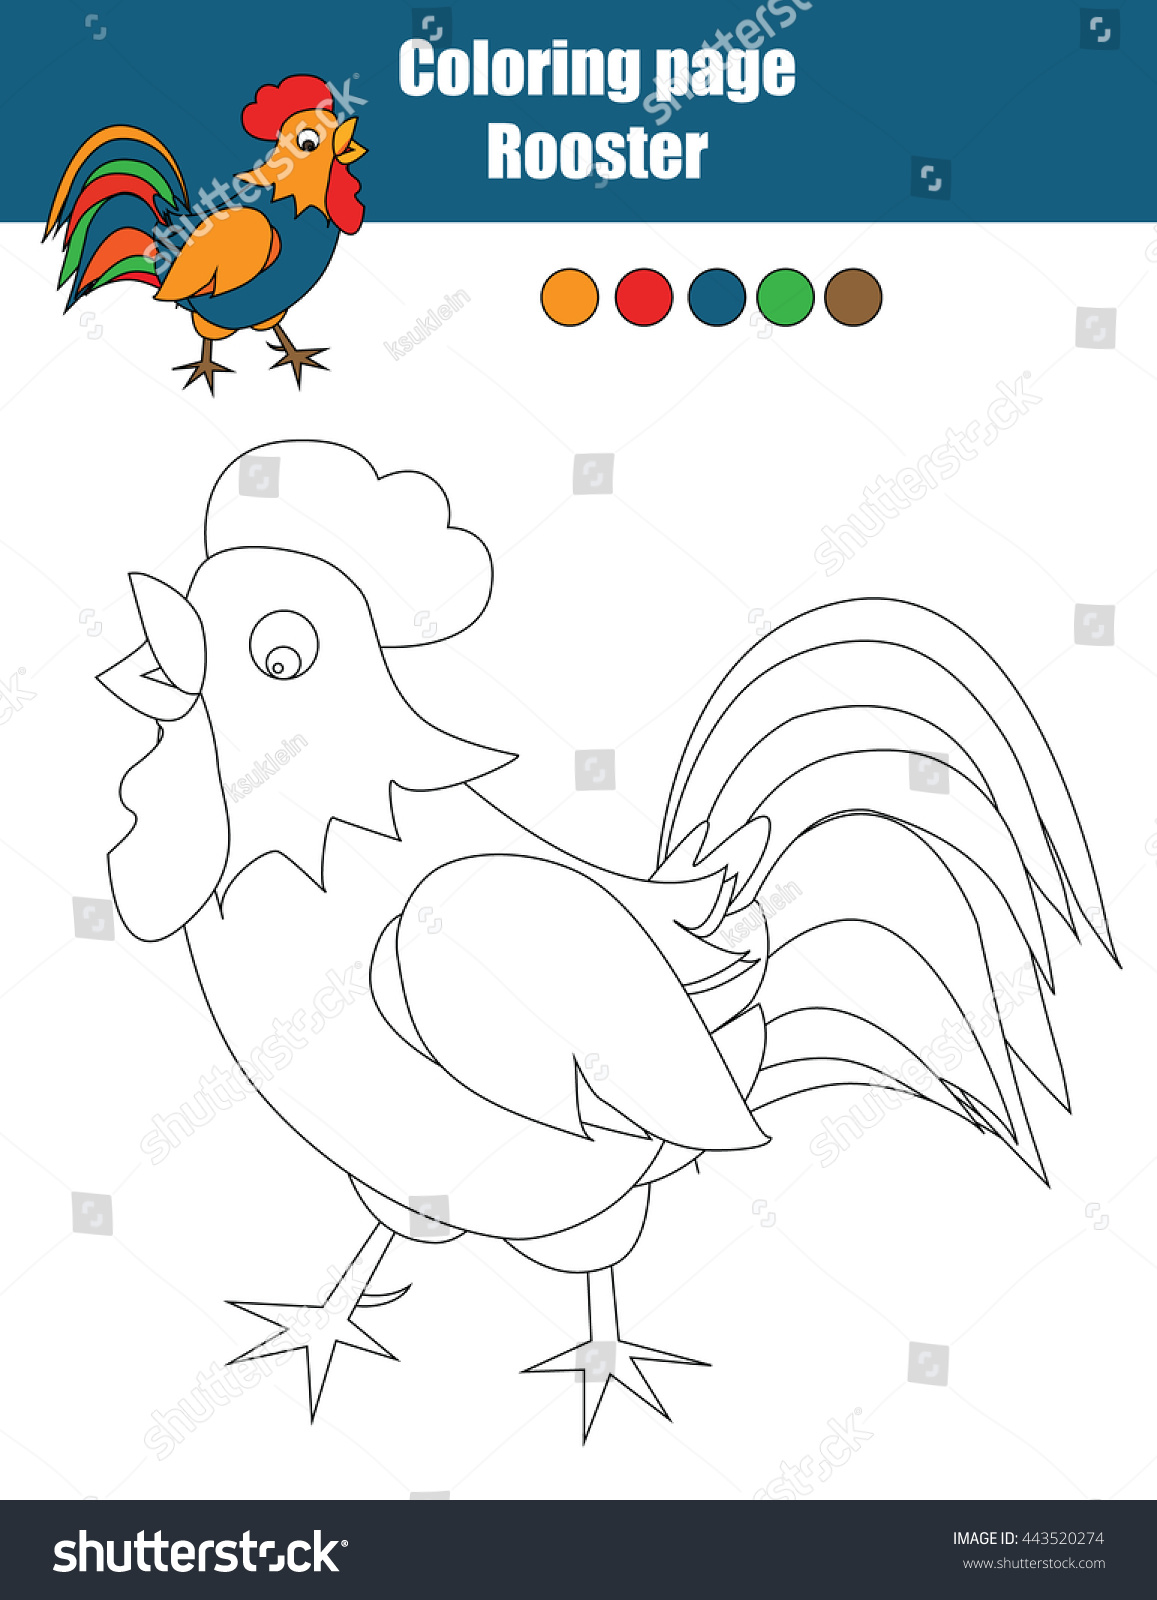 Childrens educational coloring activity book - Coloring Page With Cock Color The Rooster Drawing Activity Educational Game For Kids